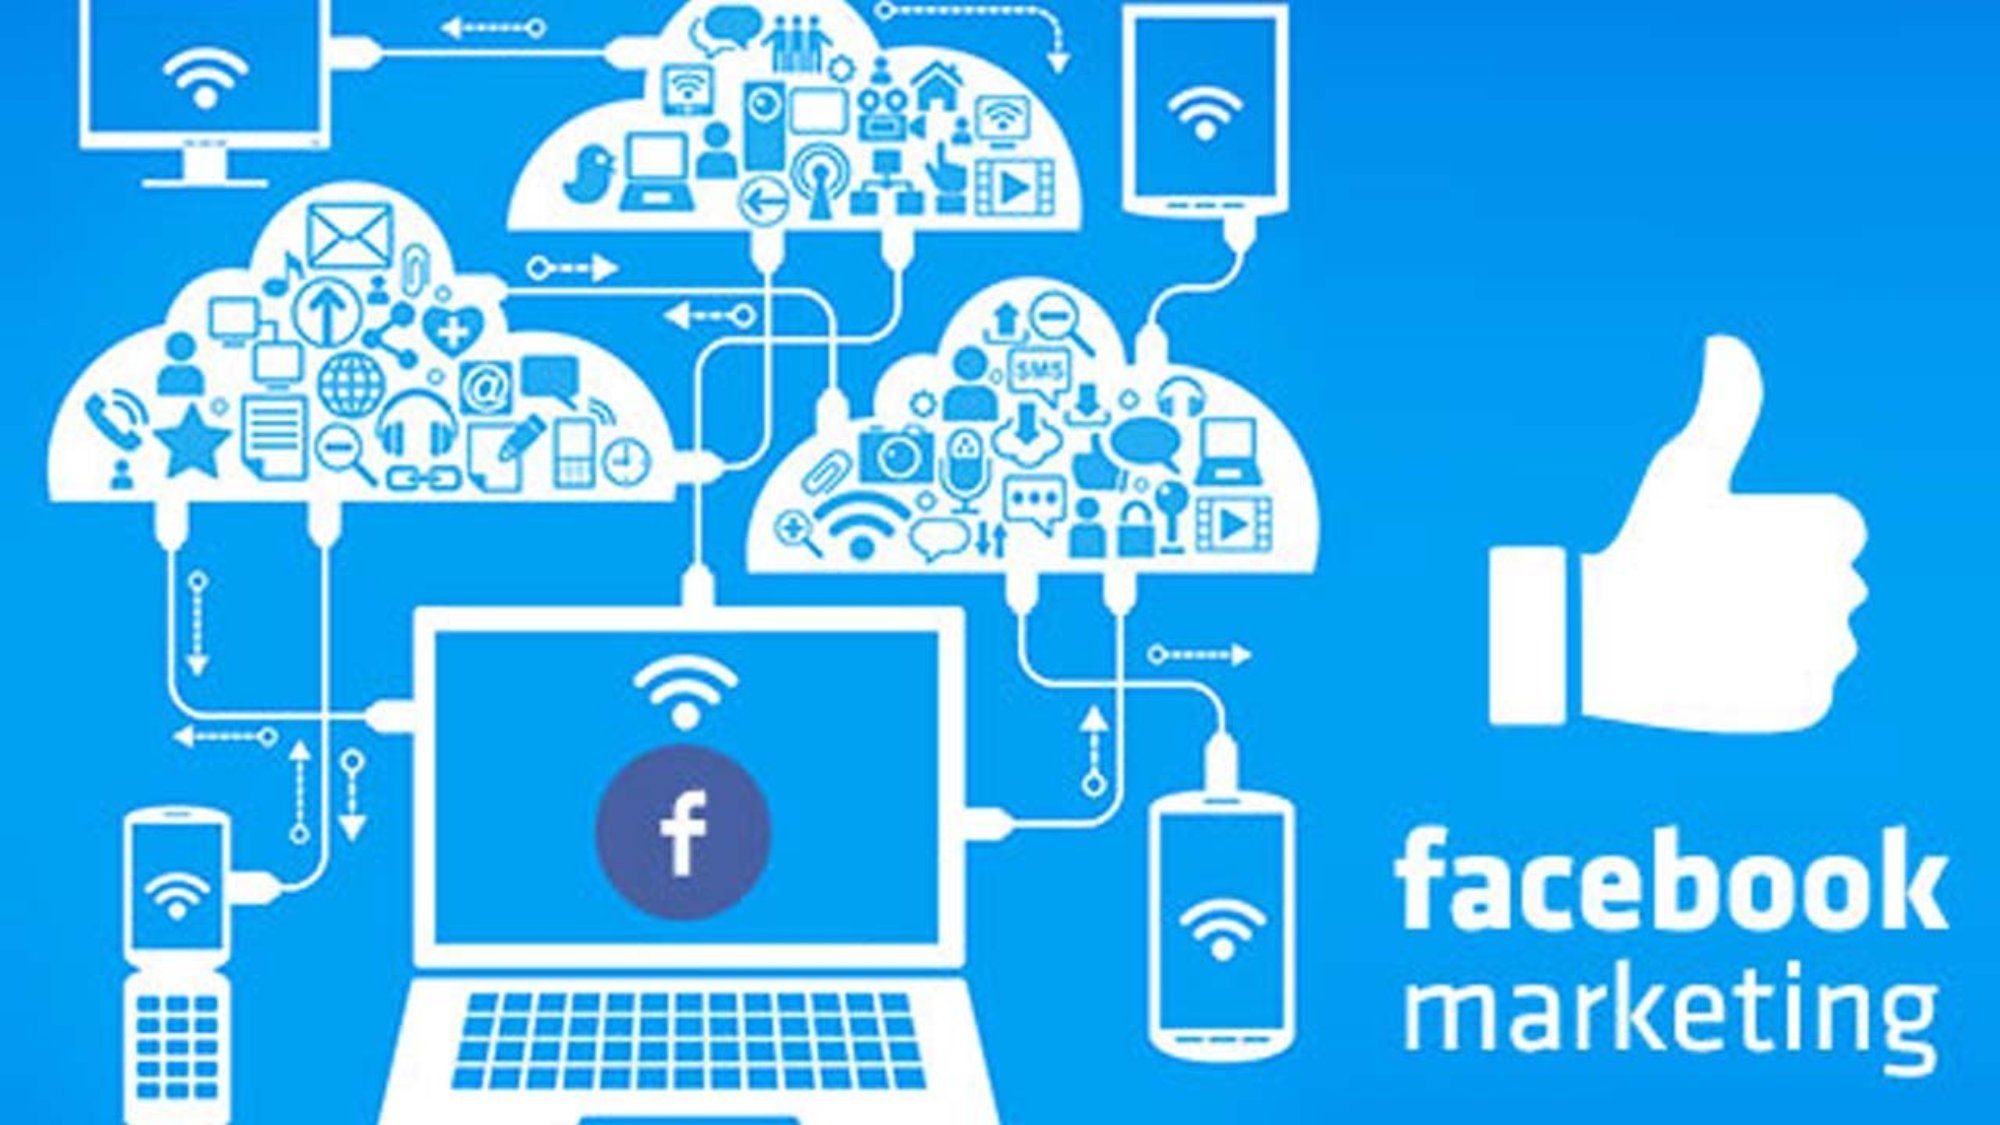 post everything - How To Increase Facebook Page Reach